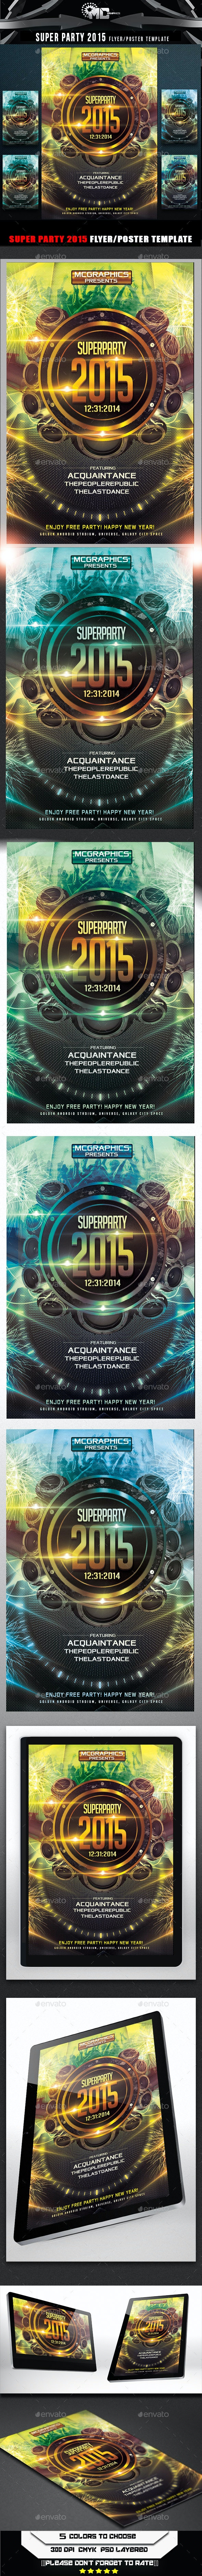 Super Party 2015 Flyer Template - Flyers Print Templates